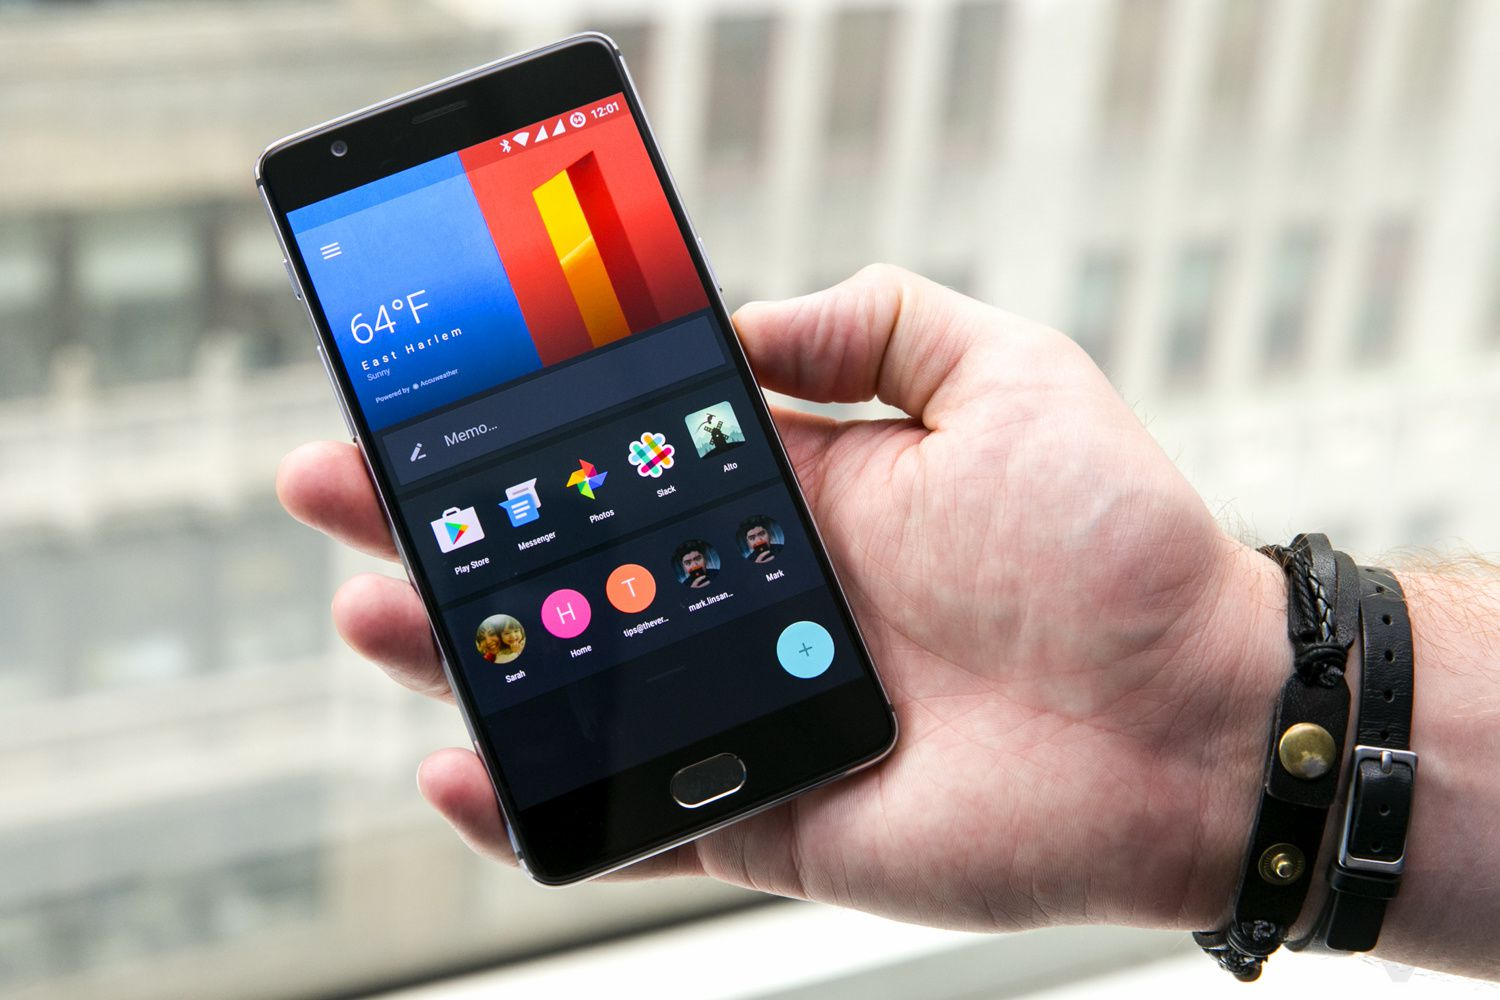 OnePlus 3 review: lessons learned